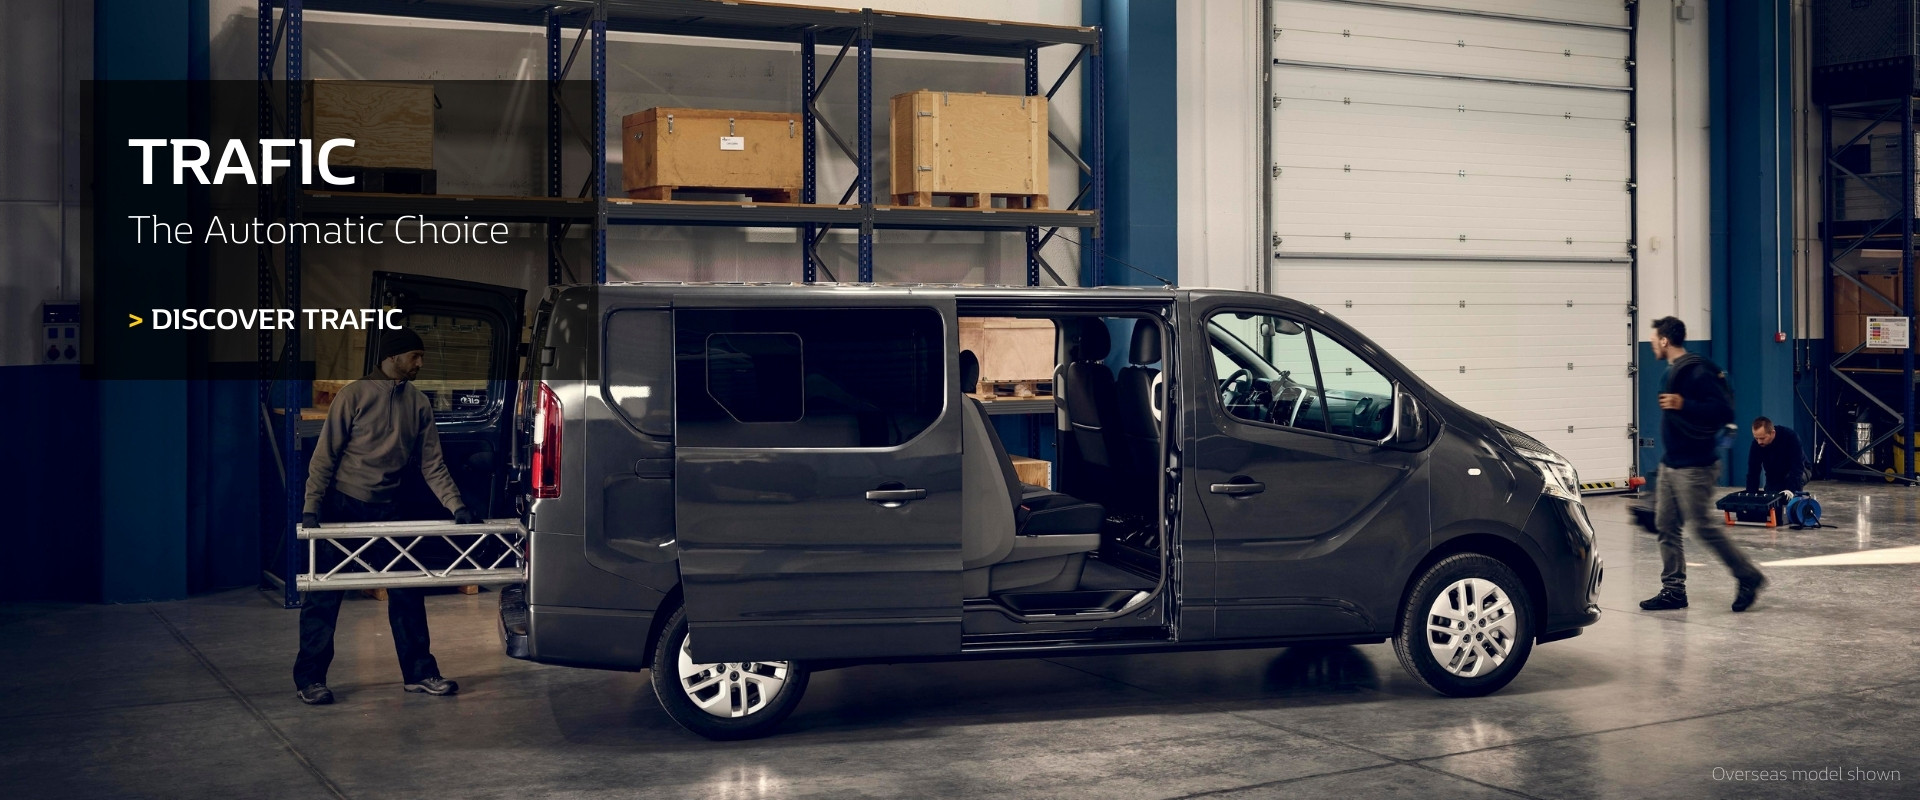 Renault TRAFIC - The Automatic Choice